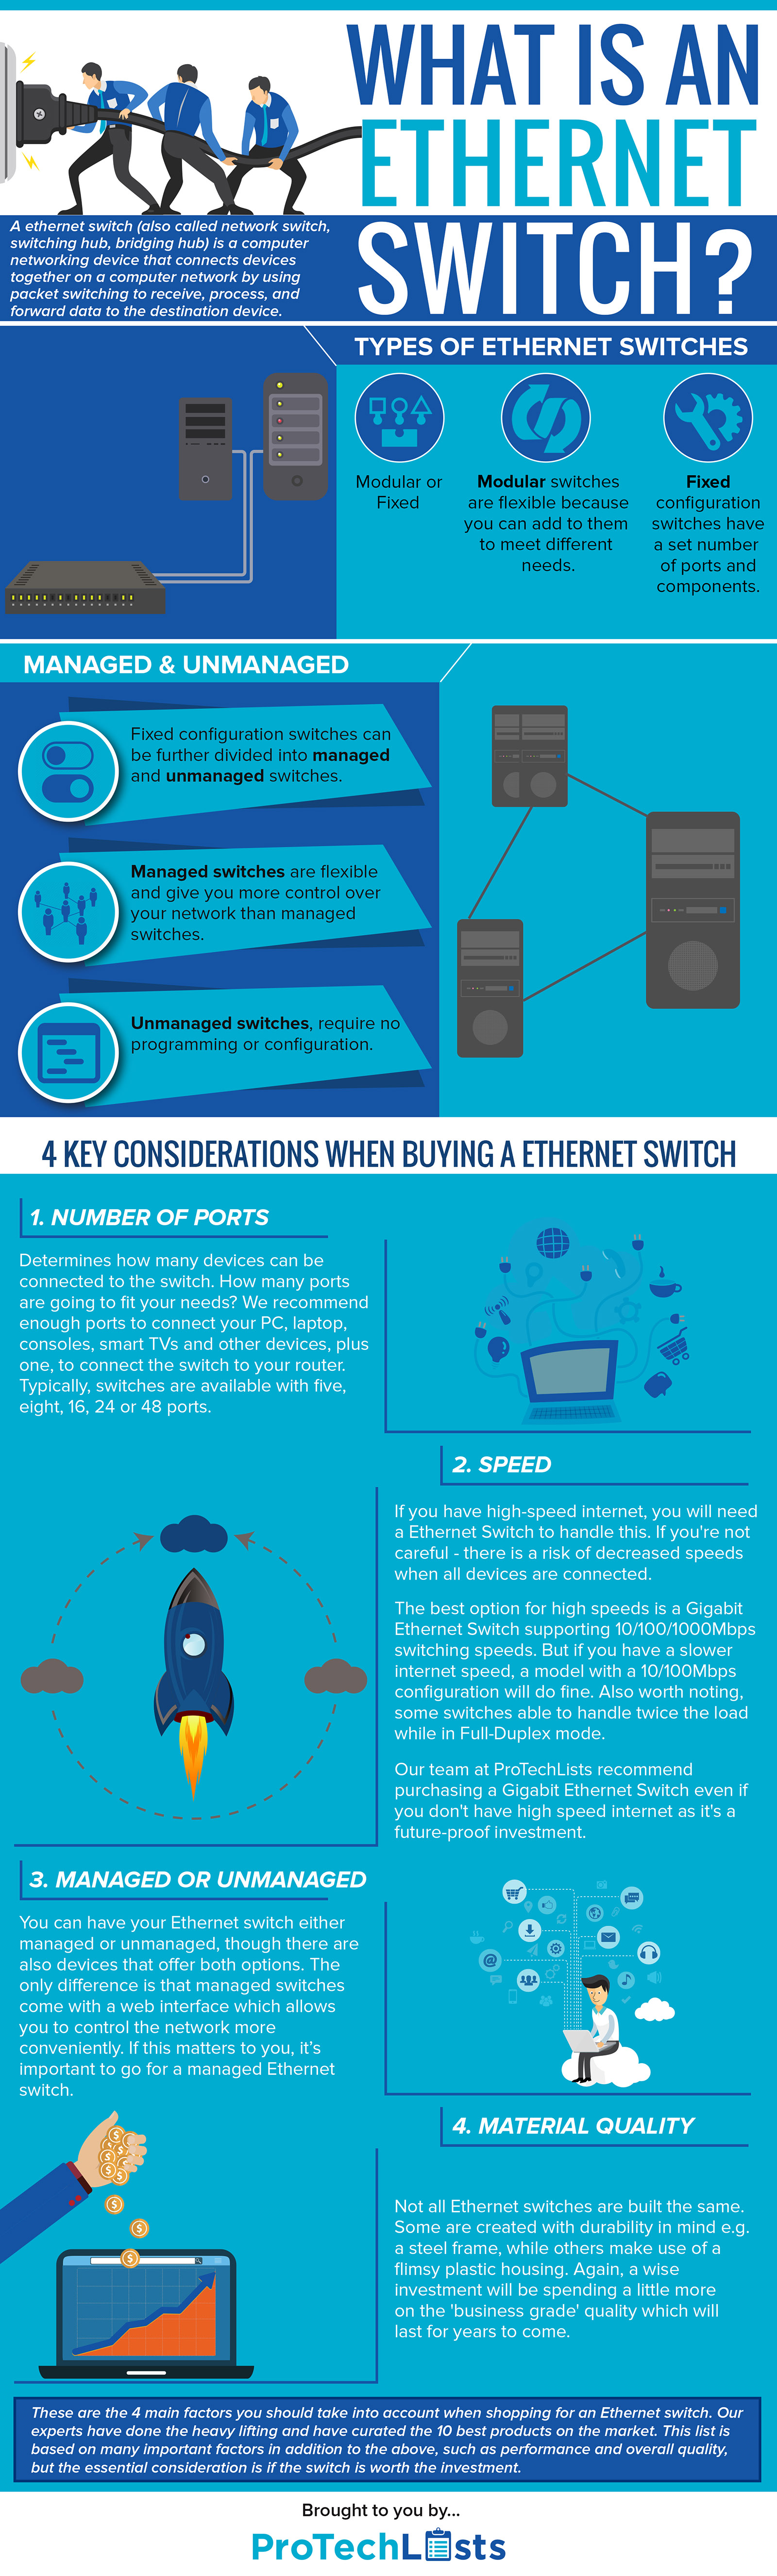 Best Ethernet Switch Of 2018 Top 10 Network Switches Updated Fast Wiring Diagram Heres My Take On From The Infographic